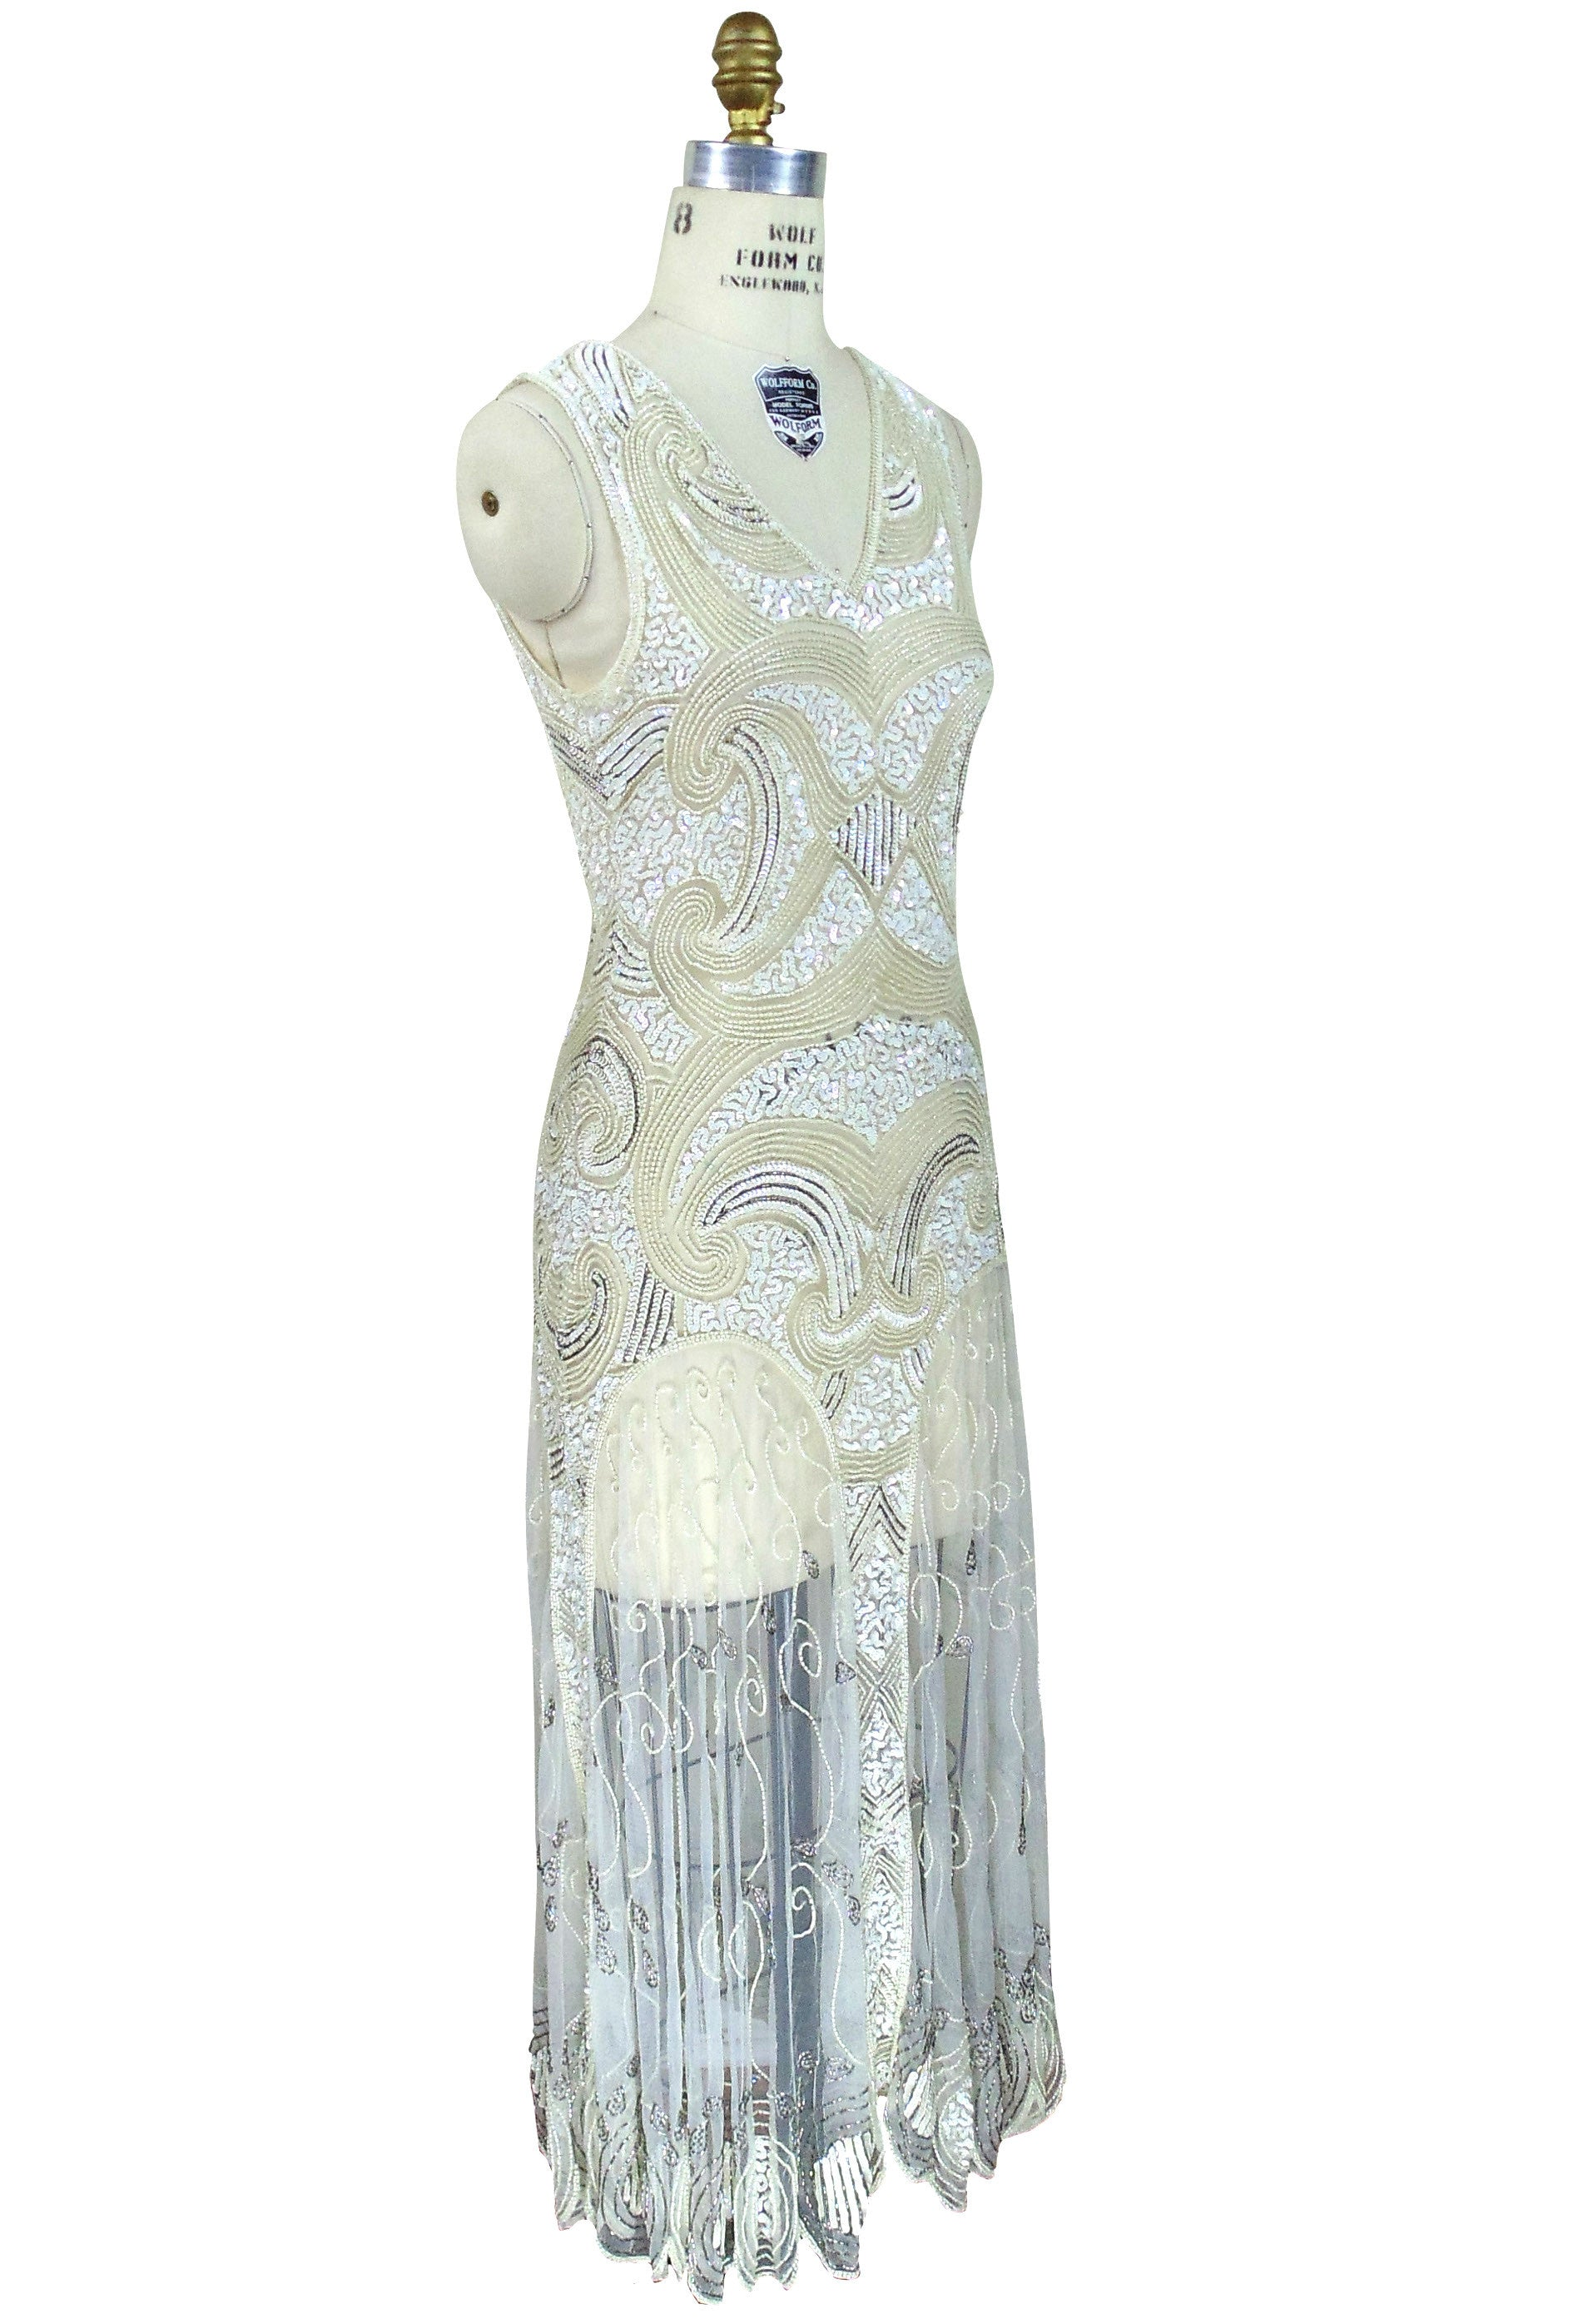 Captivating ... Art Deco Vintage Reproduction 1920u0027s Gown   The Cosmos   Ivory   The Deco  Haus ...